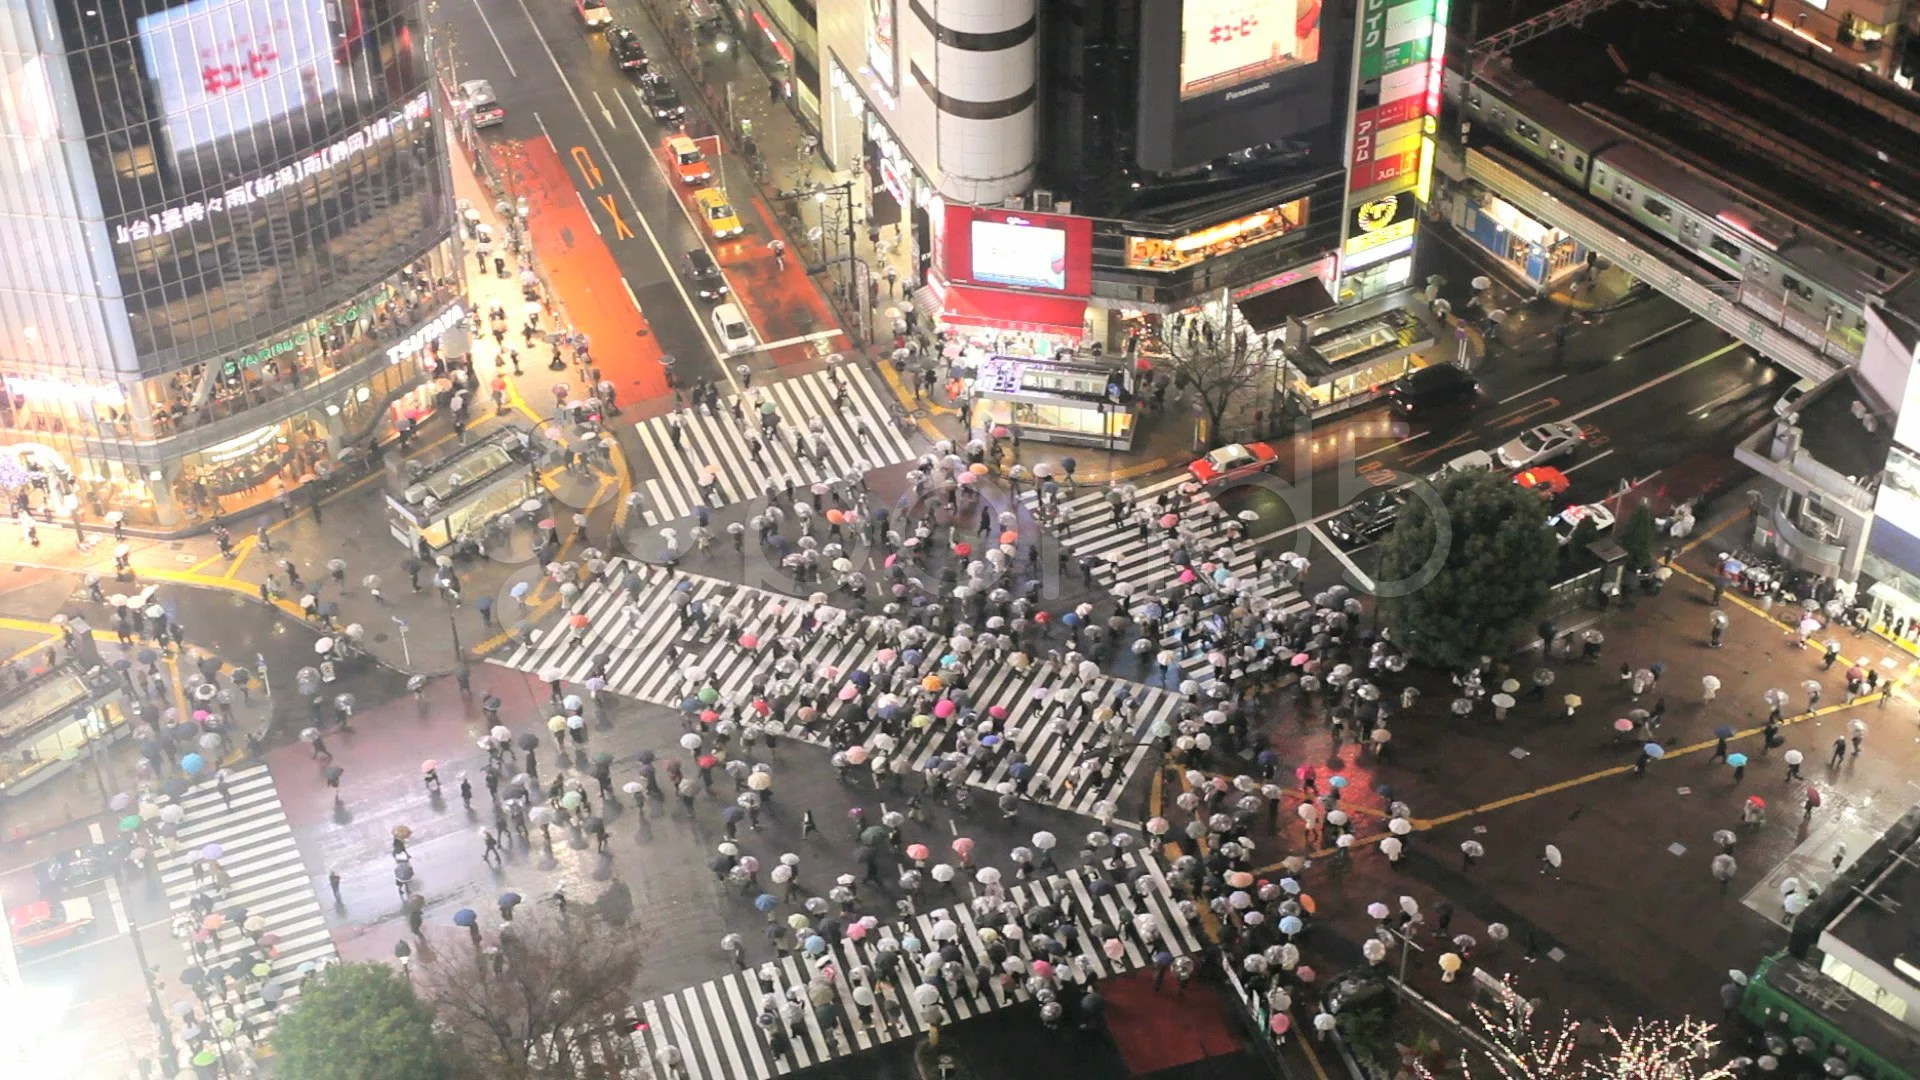 3d Shark Wallpaper Video Japan Tokyo Shibuya Shibuya Crossing At Night